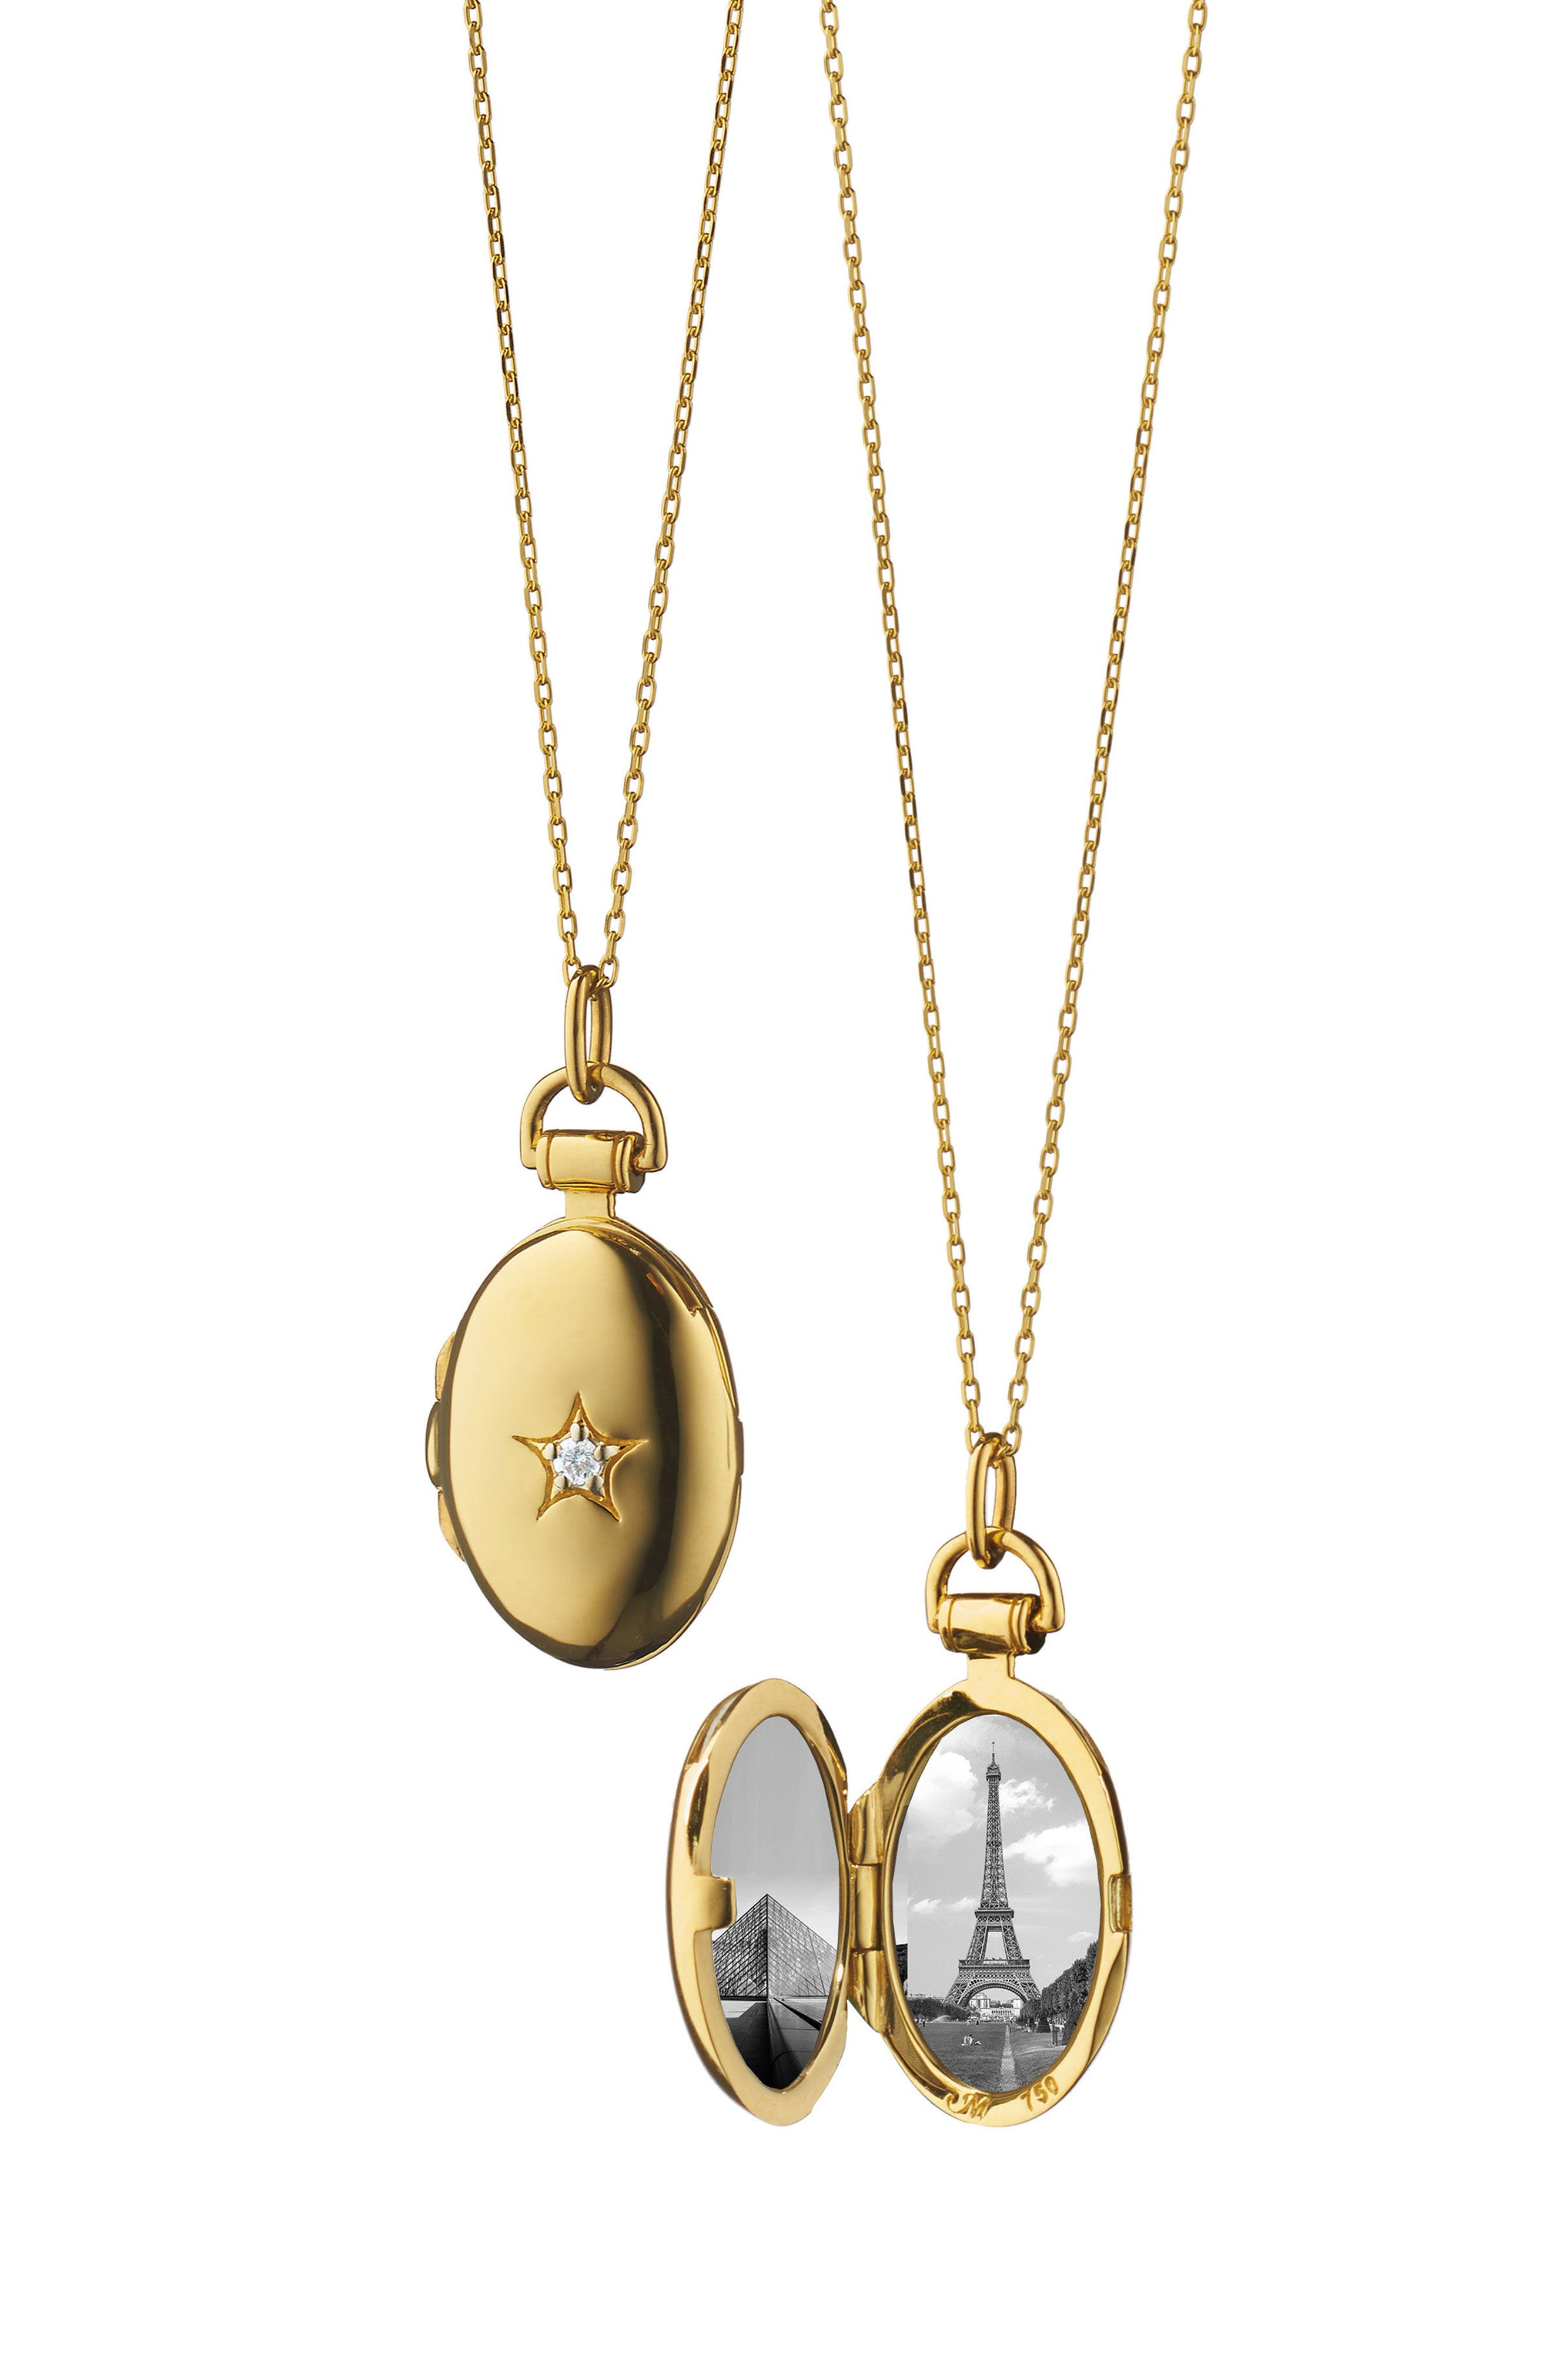 Petite Oval Gold Locket Necklace,                         Main,                         color, 18K YELLOW GOLD